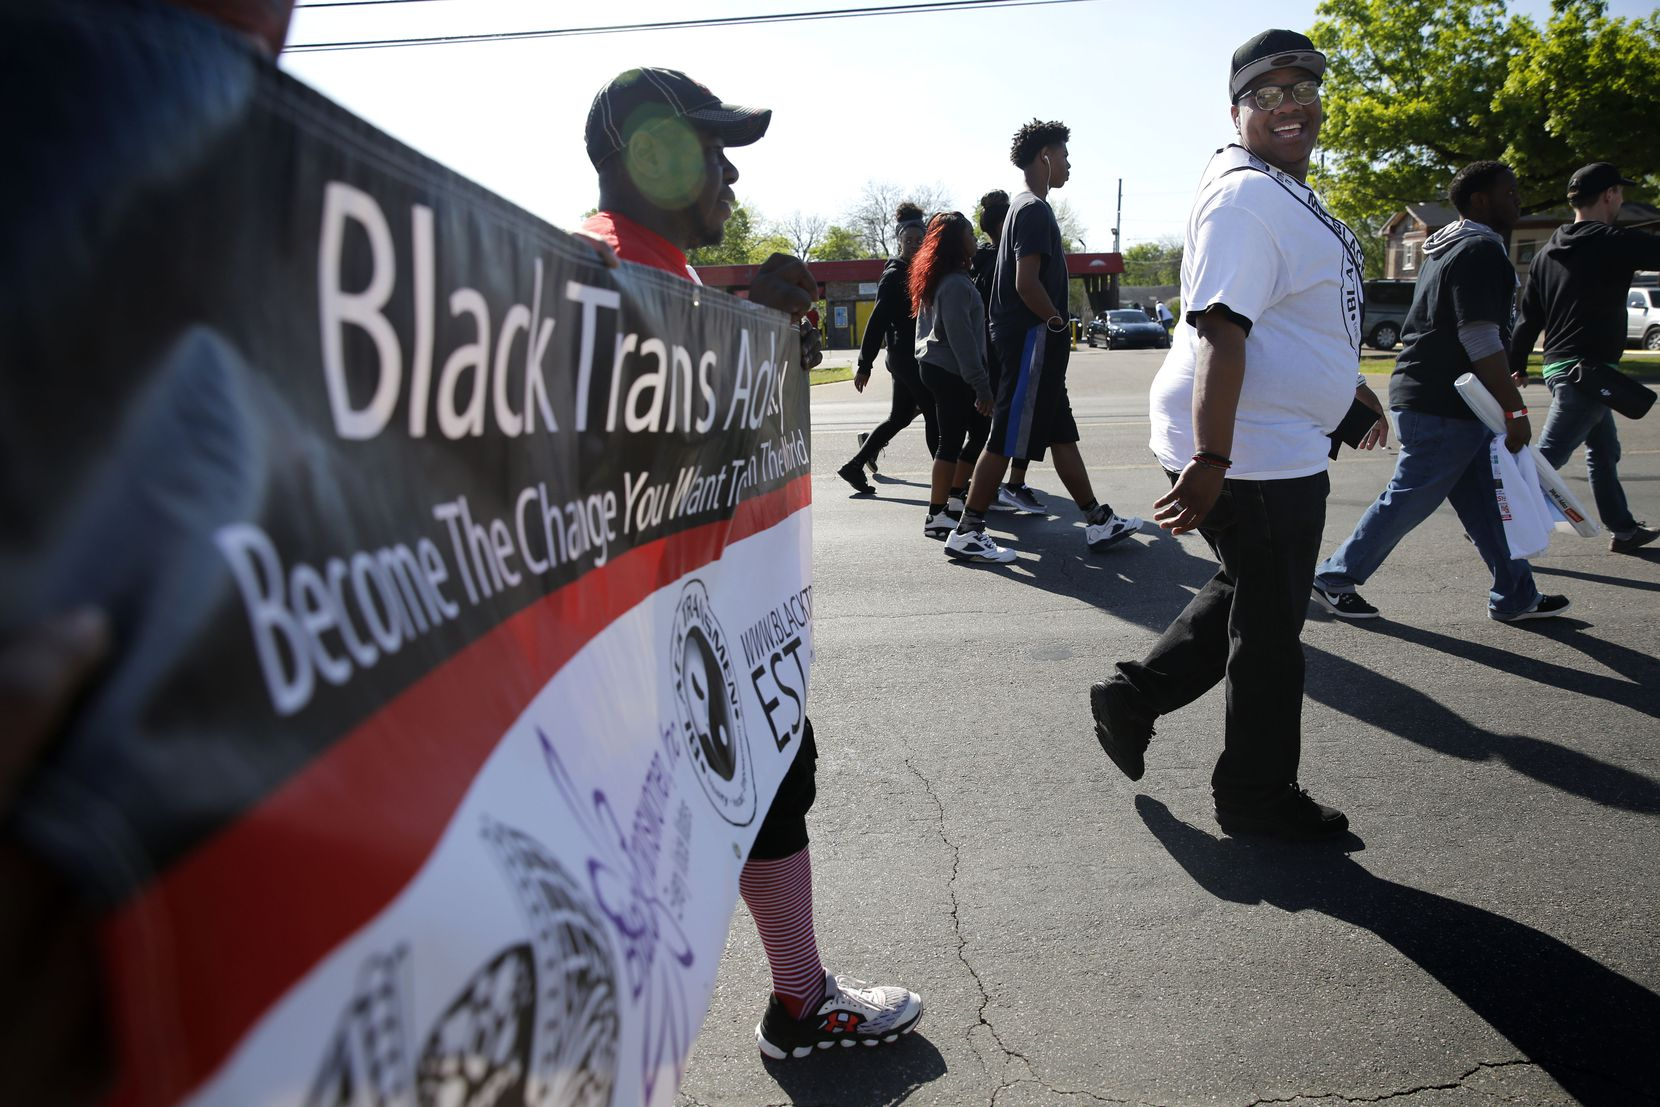 Trenton Johnson (far right), a transgender man, participates in the AIDS Walk South Dallas with other Black Trans Advocacy Coalition members near the Martin Luther King, Jr. Community Center in South Dallas on Saturday, March 25, 2017.